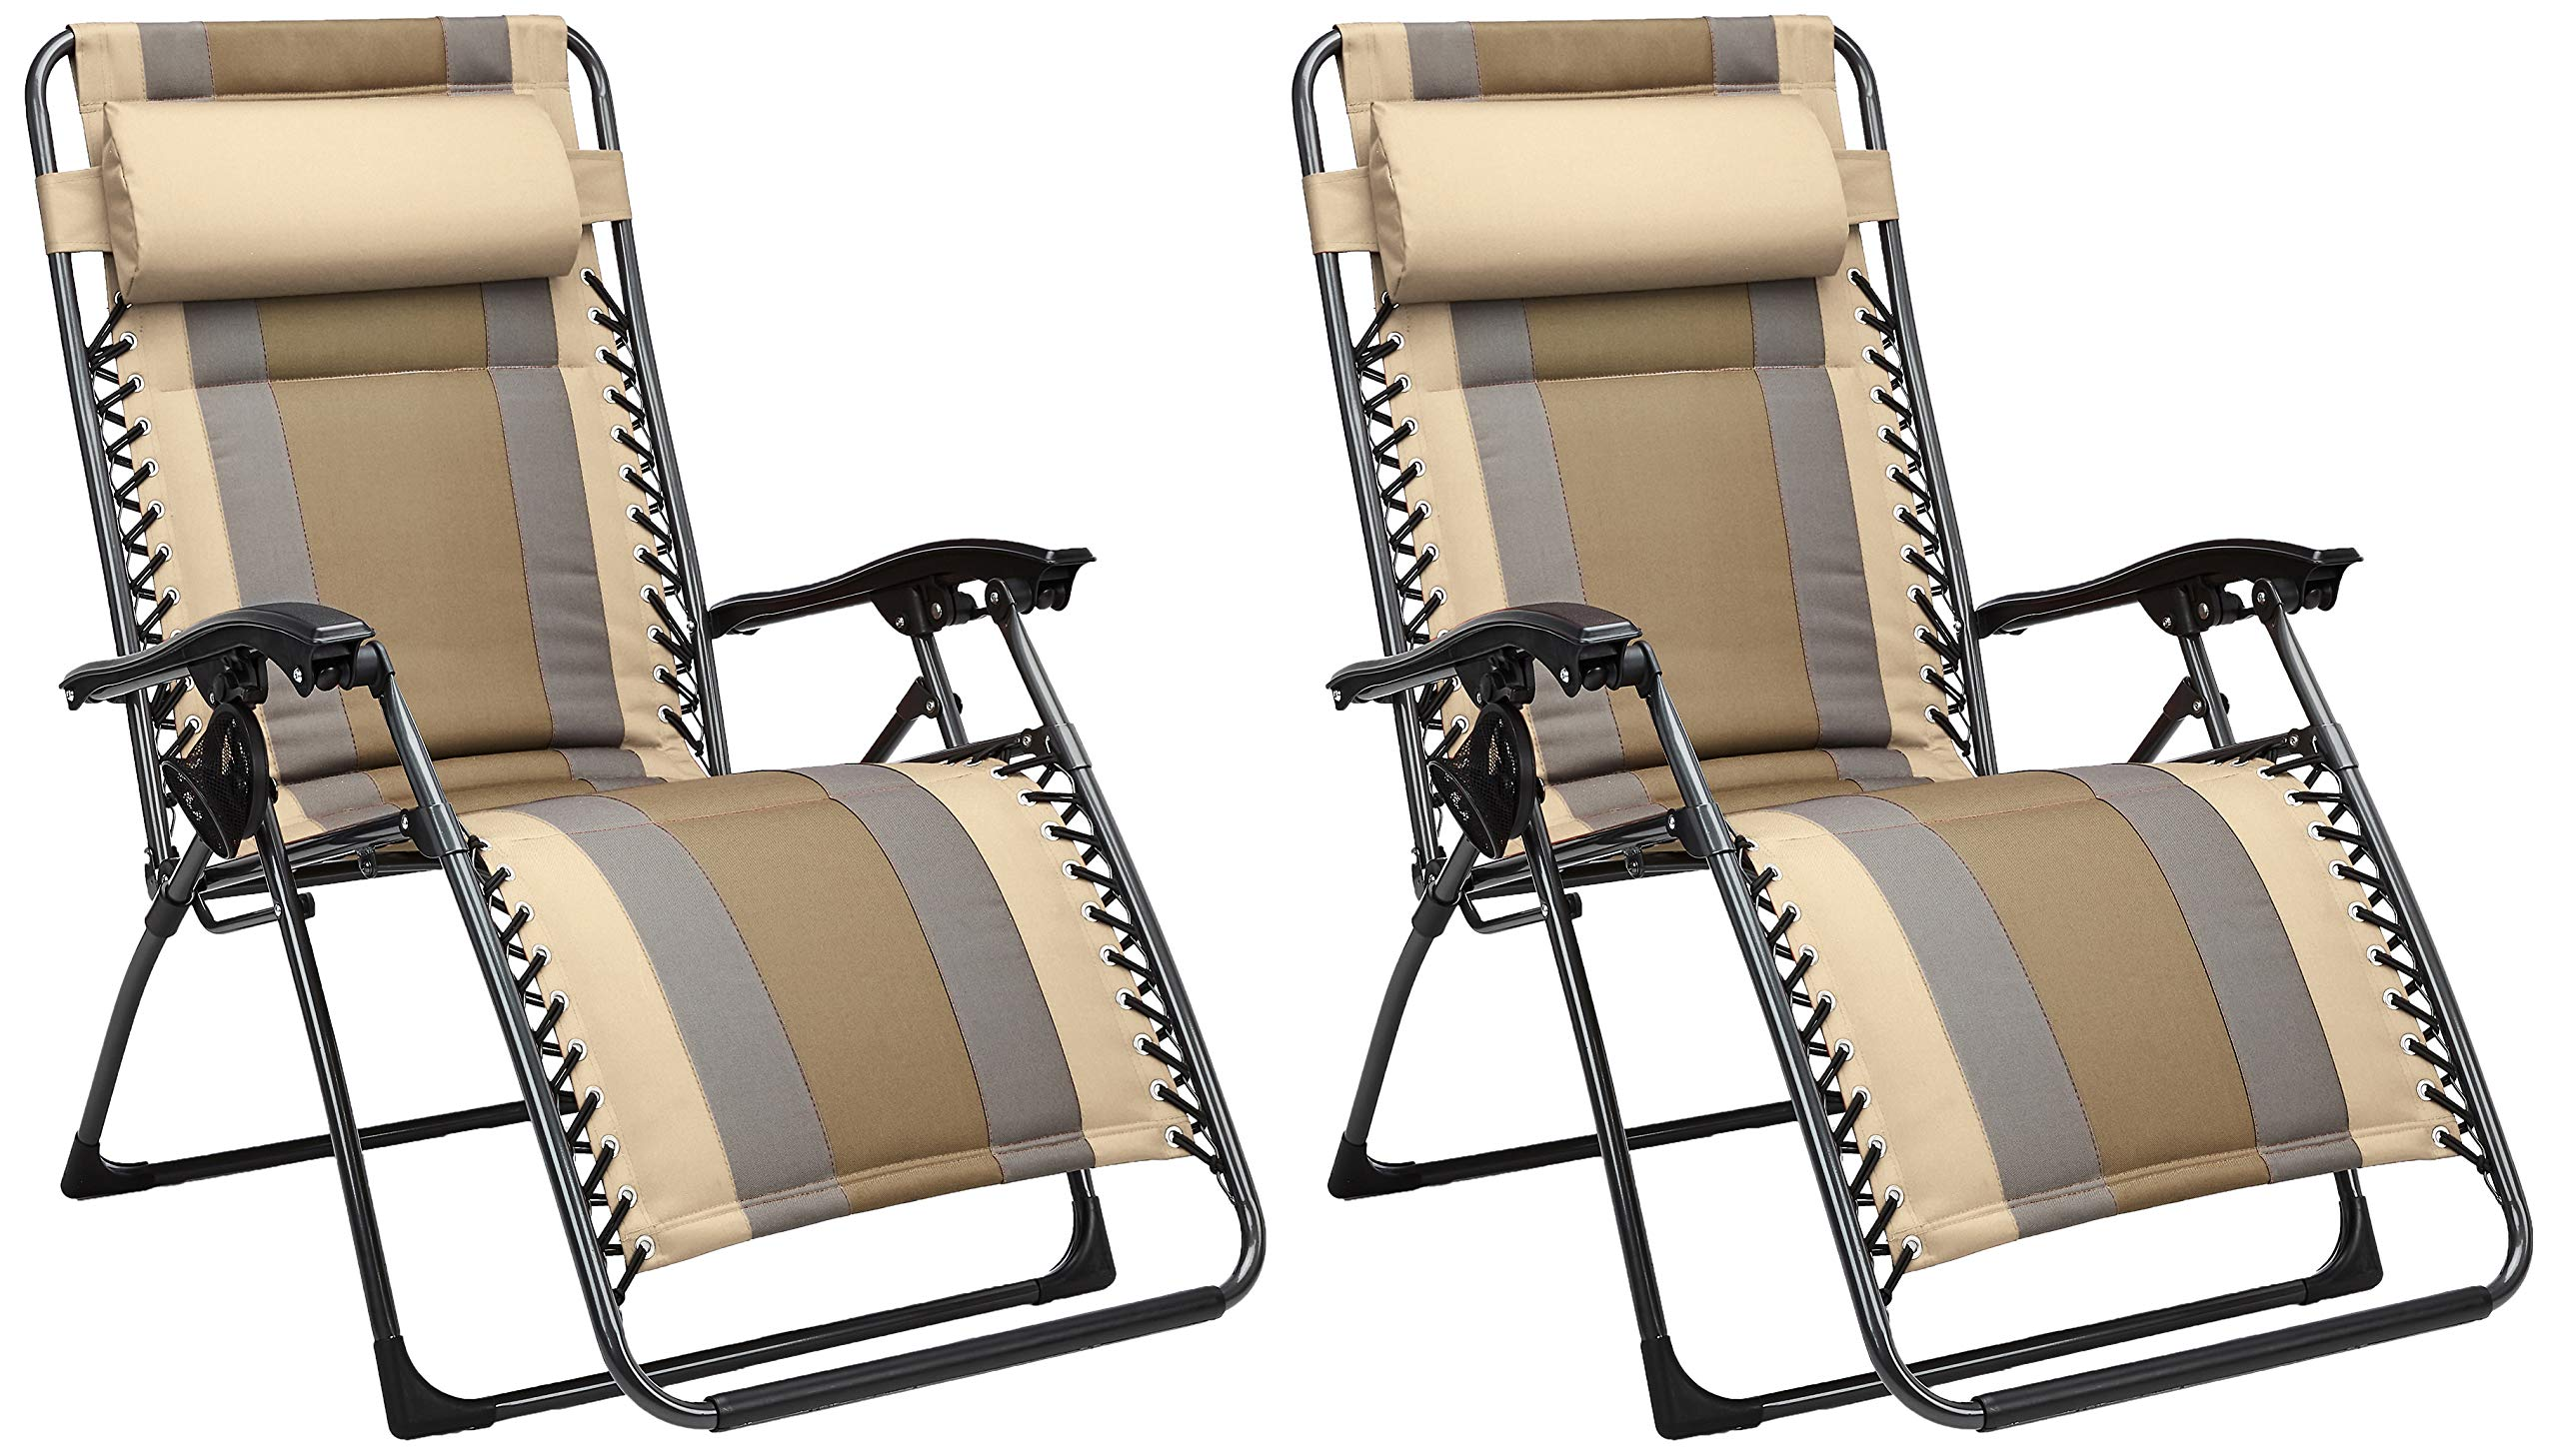 AmazonBasics Outdoor Padded Zero Gravity Lounge Beach Chair - Pack of 2, 65 x 29.5 x 44.1 Inches, Tan by AmazonBasics